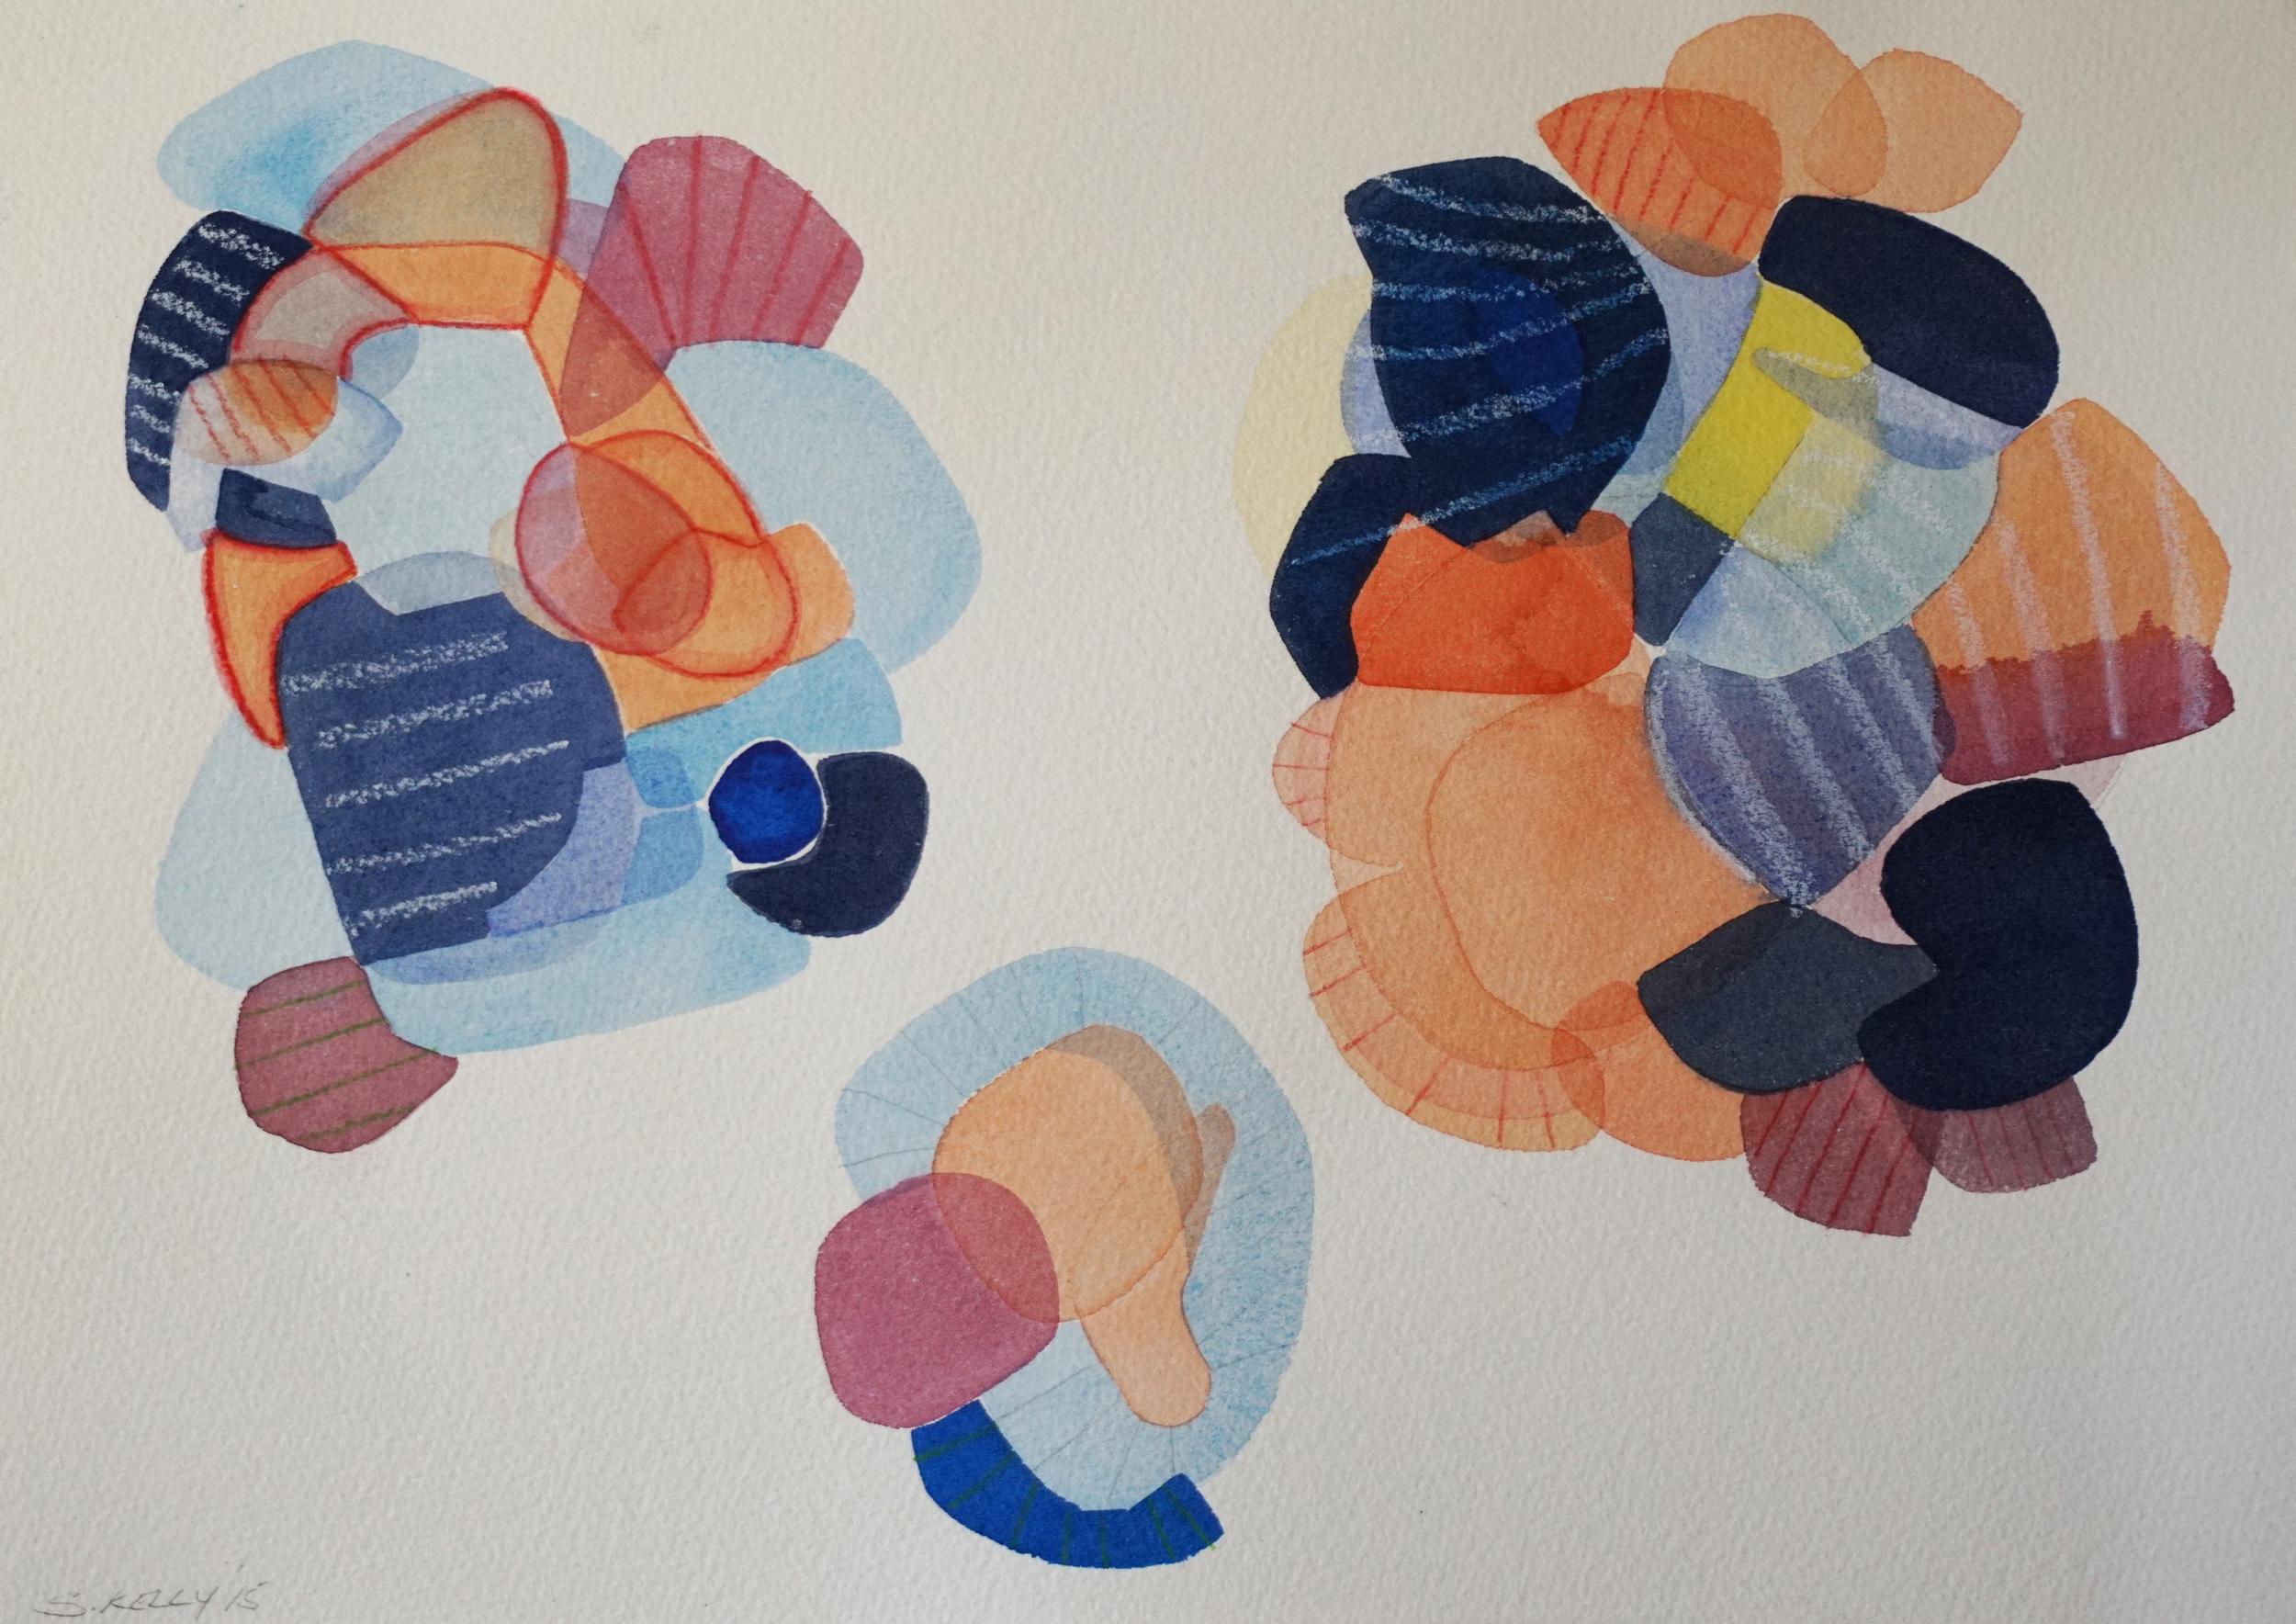 Mixed Media A3 on Arches Watercolour Paper 300gsm    AUD $495 Unframed    AVAILABLE